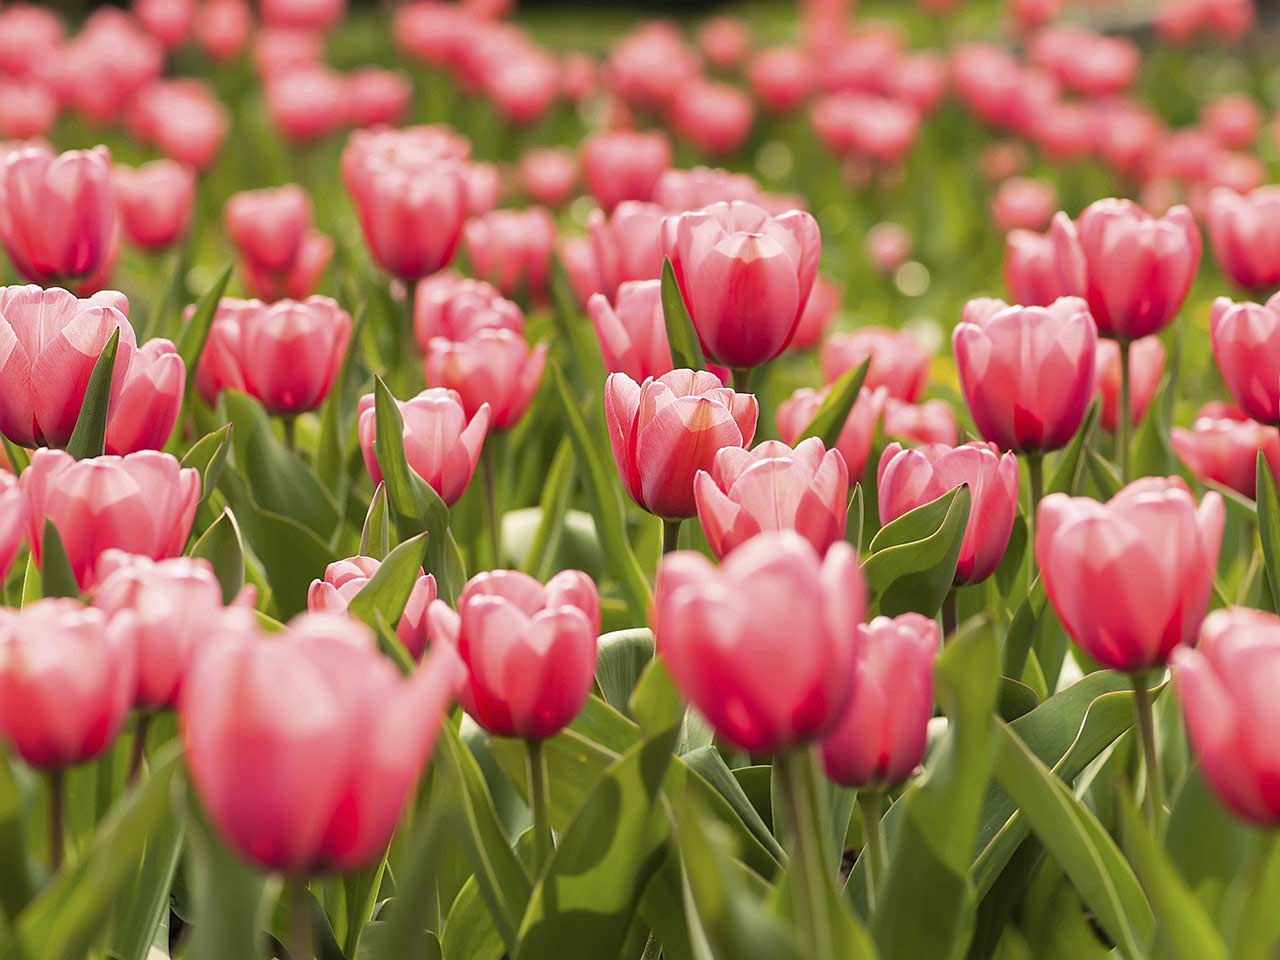 Pink tulips growing in the garden